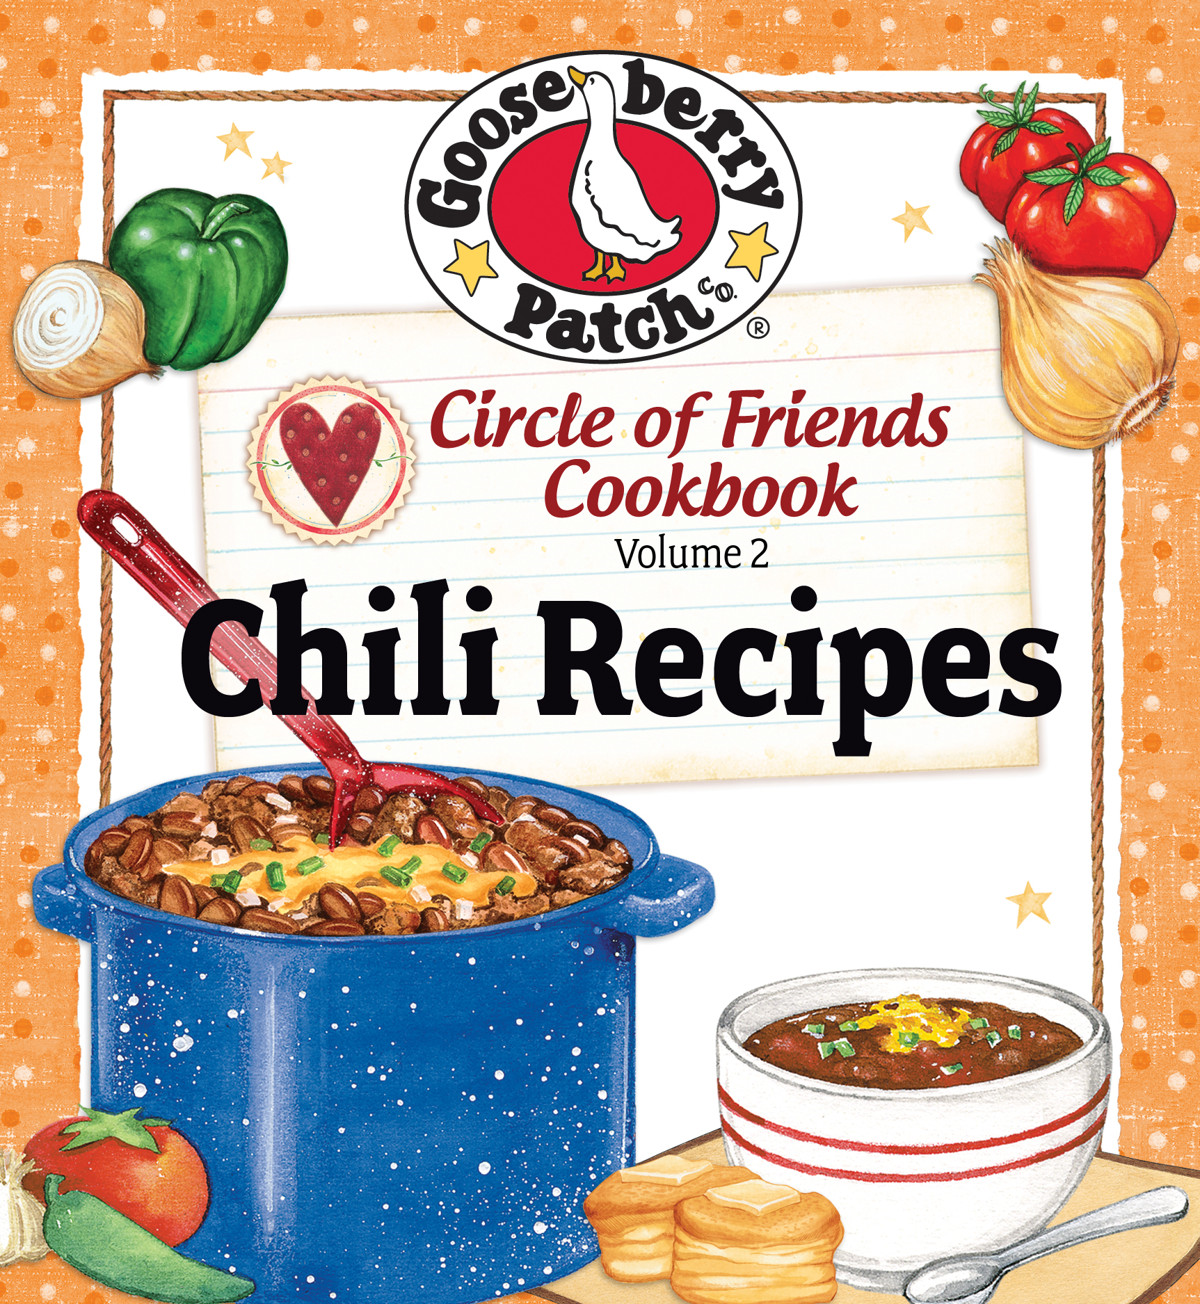 Circle of Friends Cookbook 25 Chili Recipes